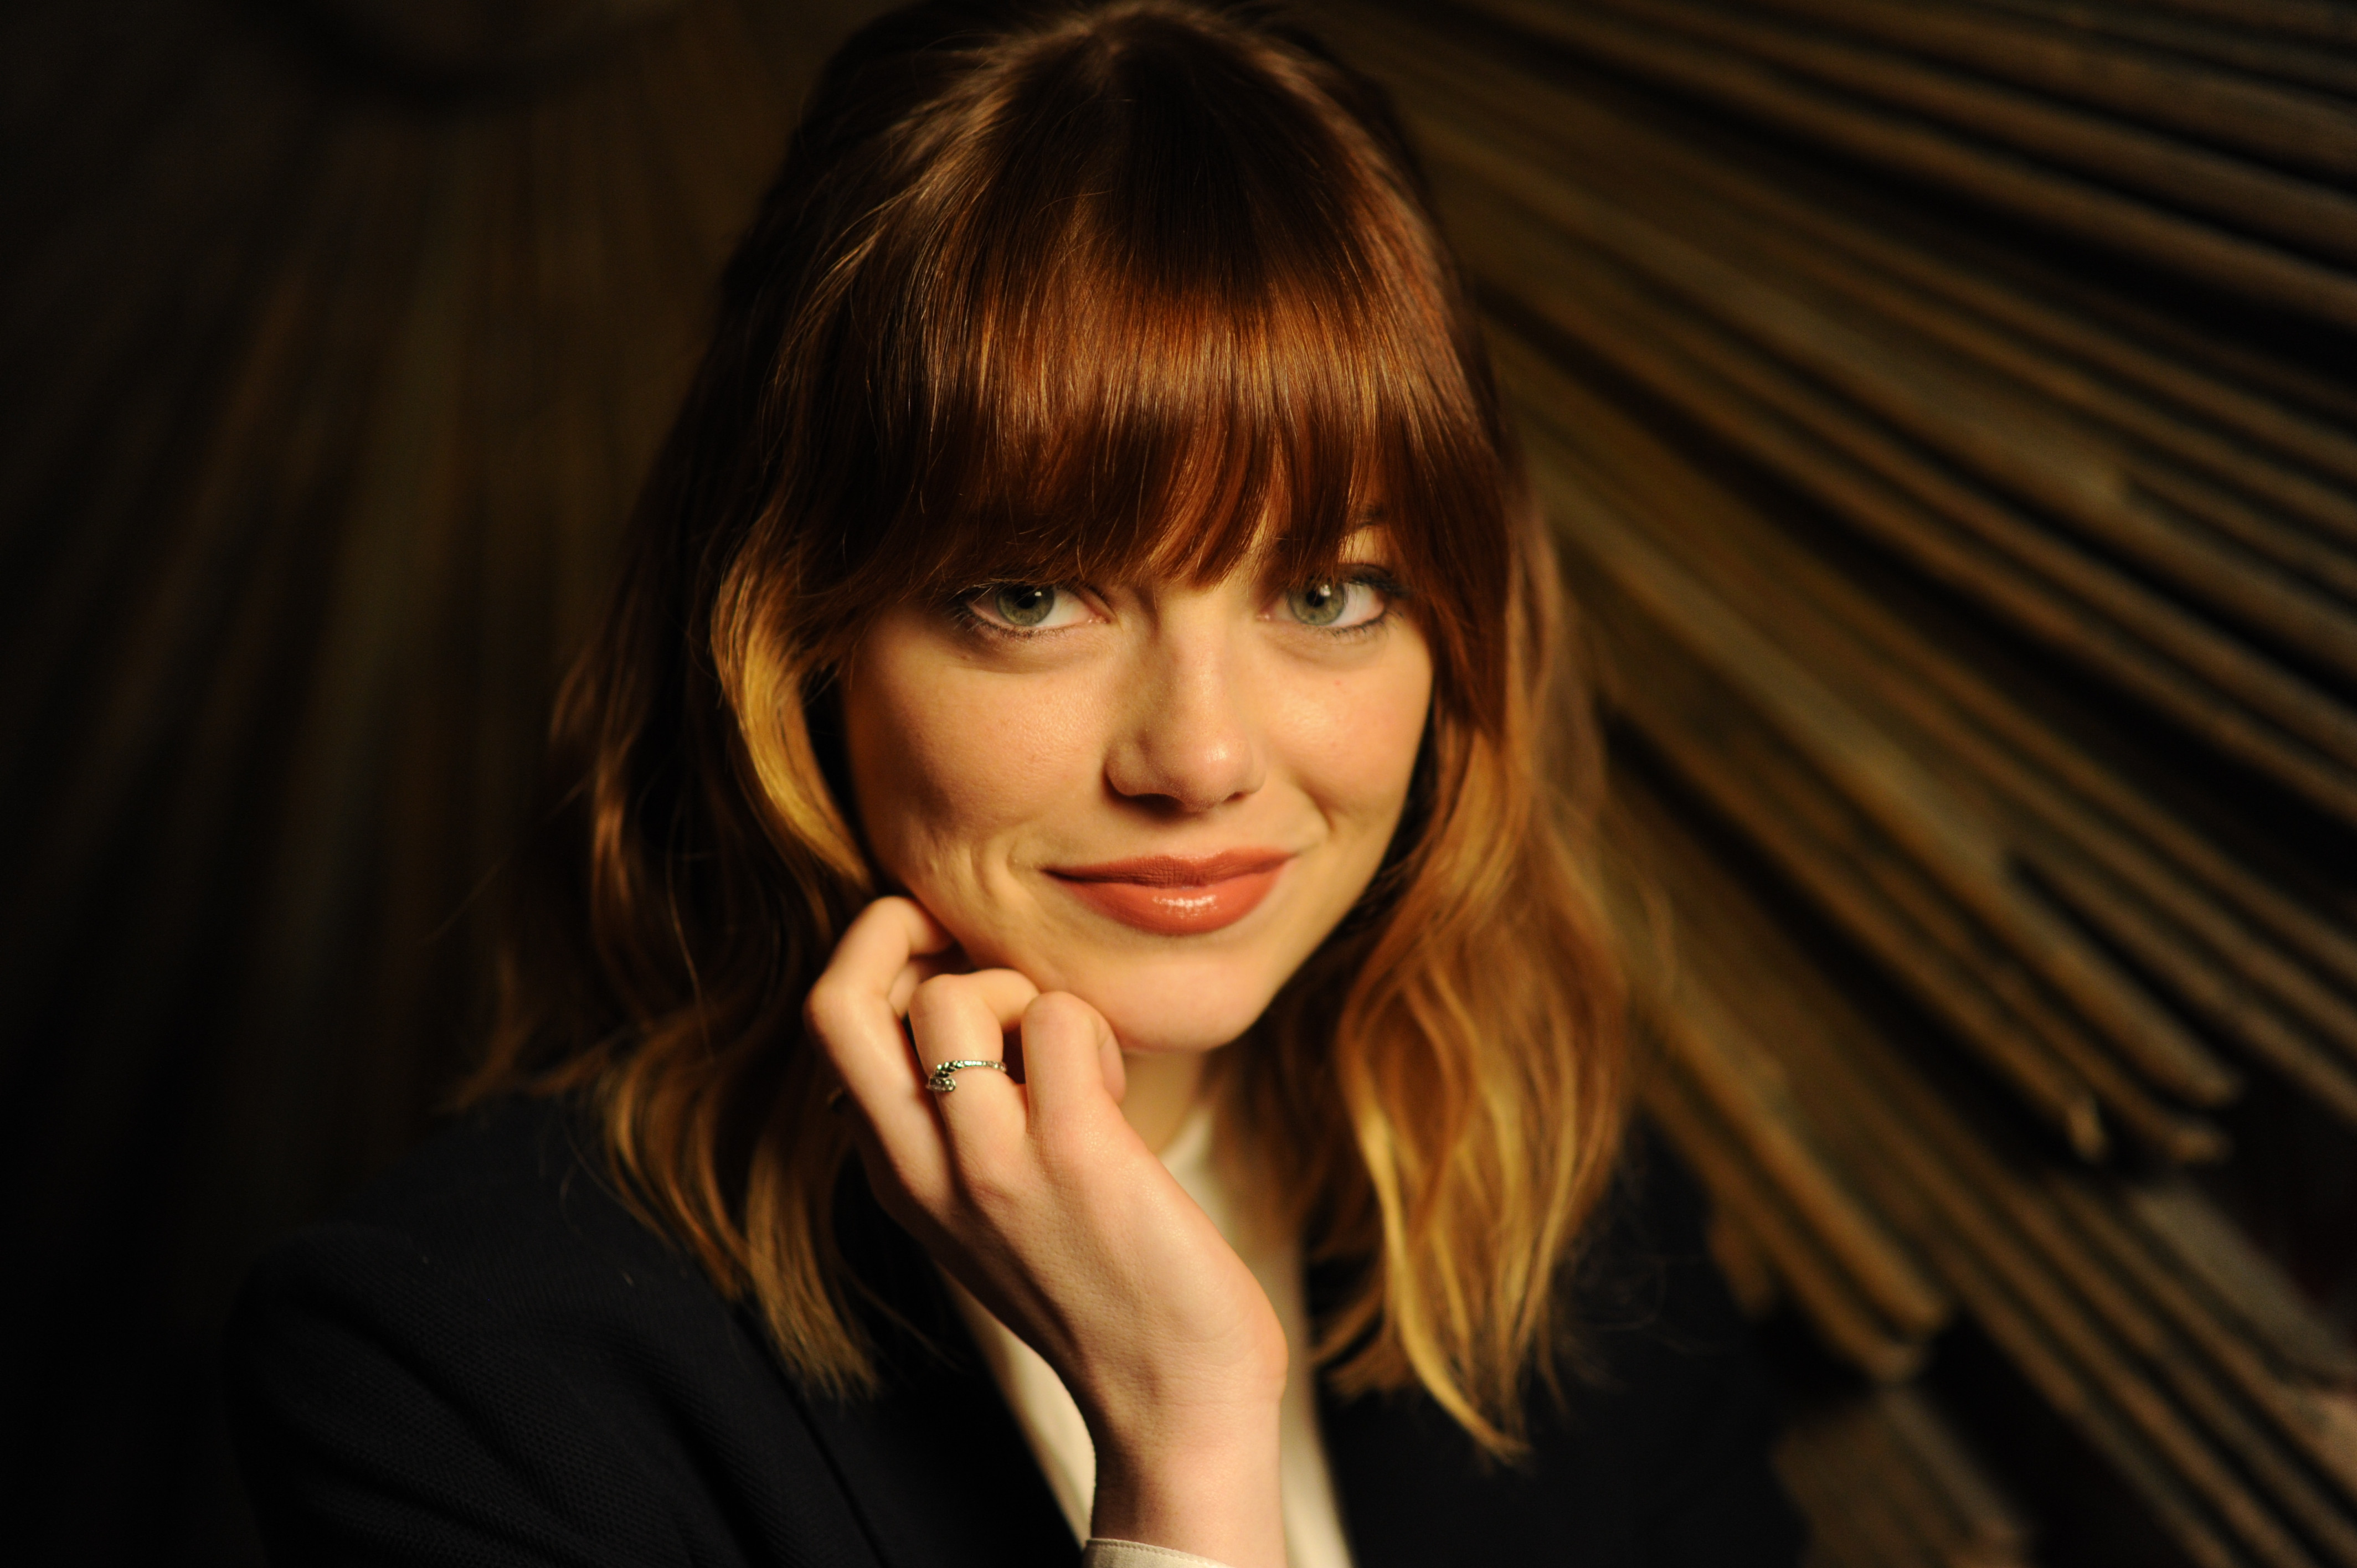 Emma stone hd wallpapers pictures images - Emma stone wallpaper ...